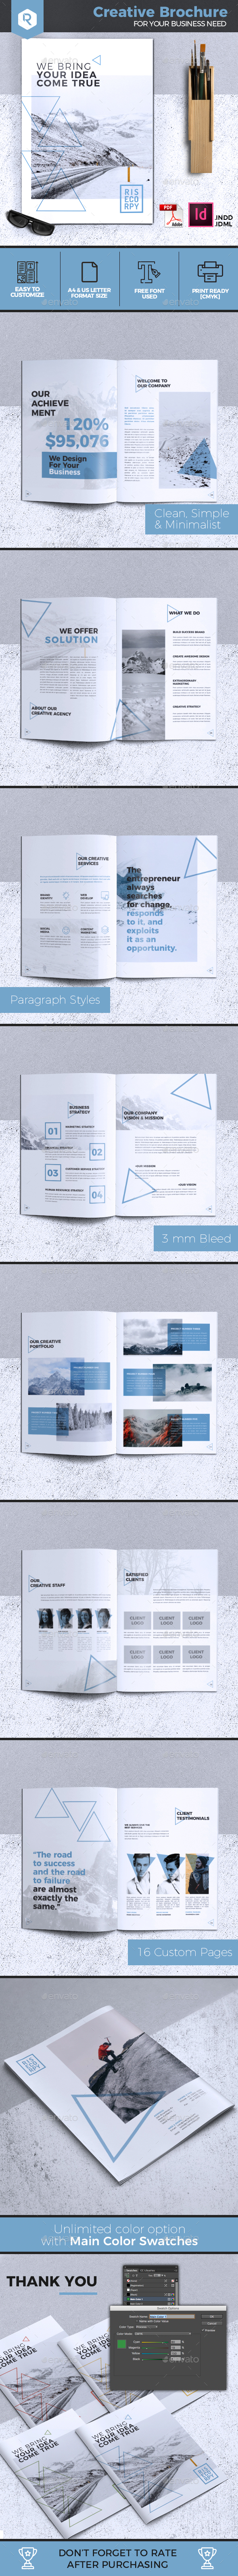 Creative Brochure Template Vol. 30 - Corporate Brochures